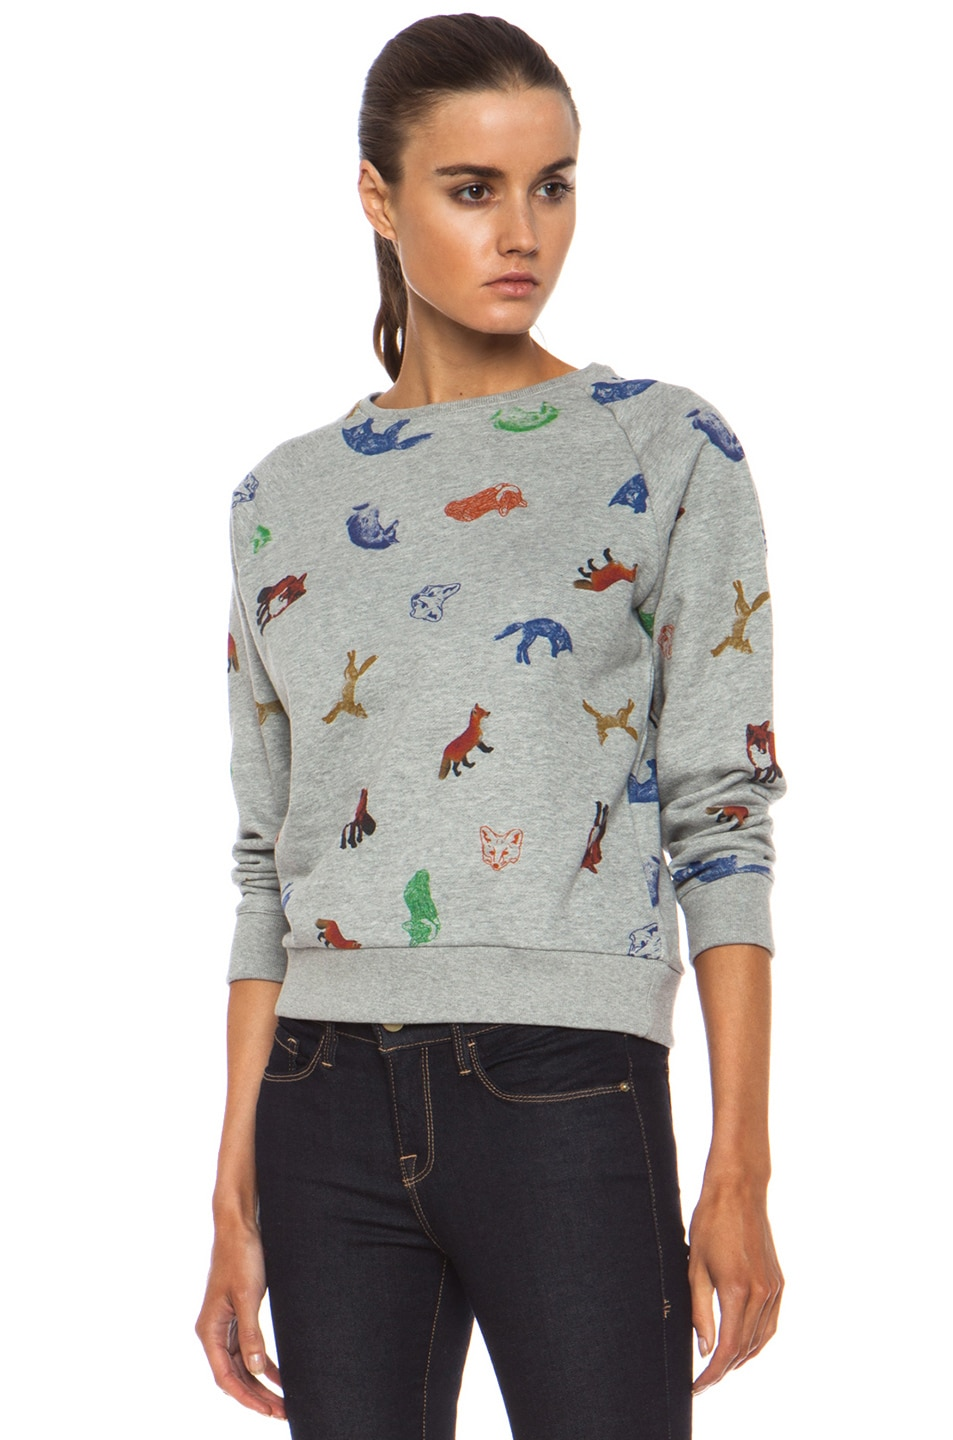 Image 2 of Maison Kitsune Childish Cotton Sweatshirt in Grey Melange